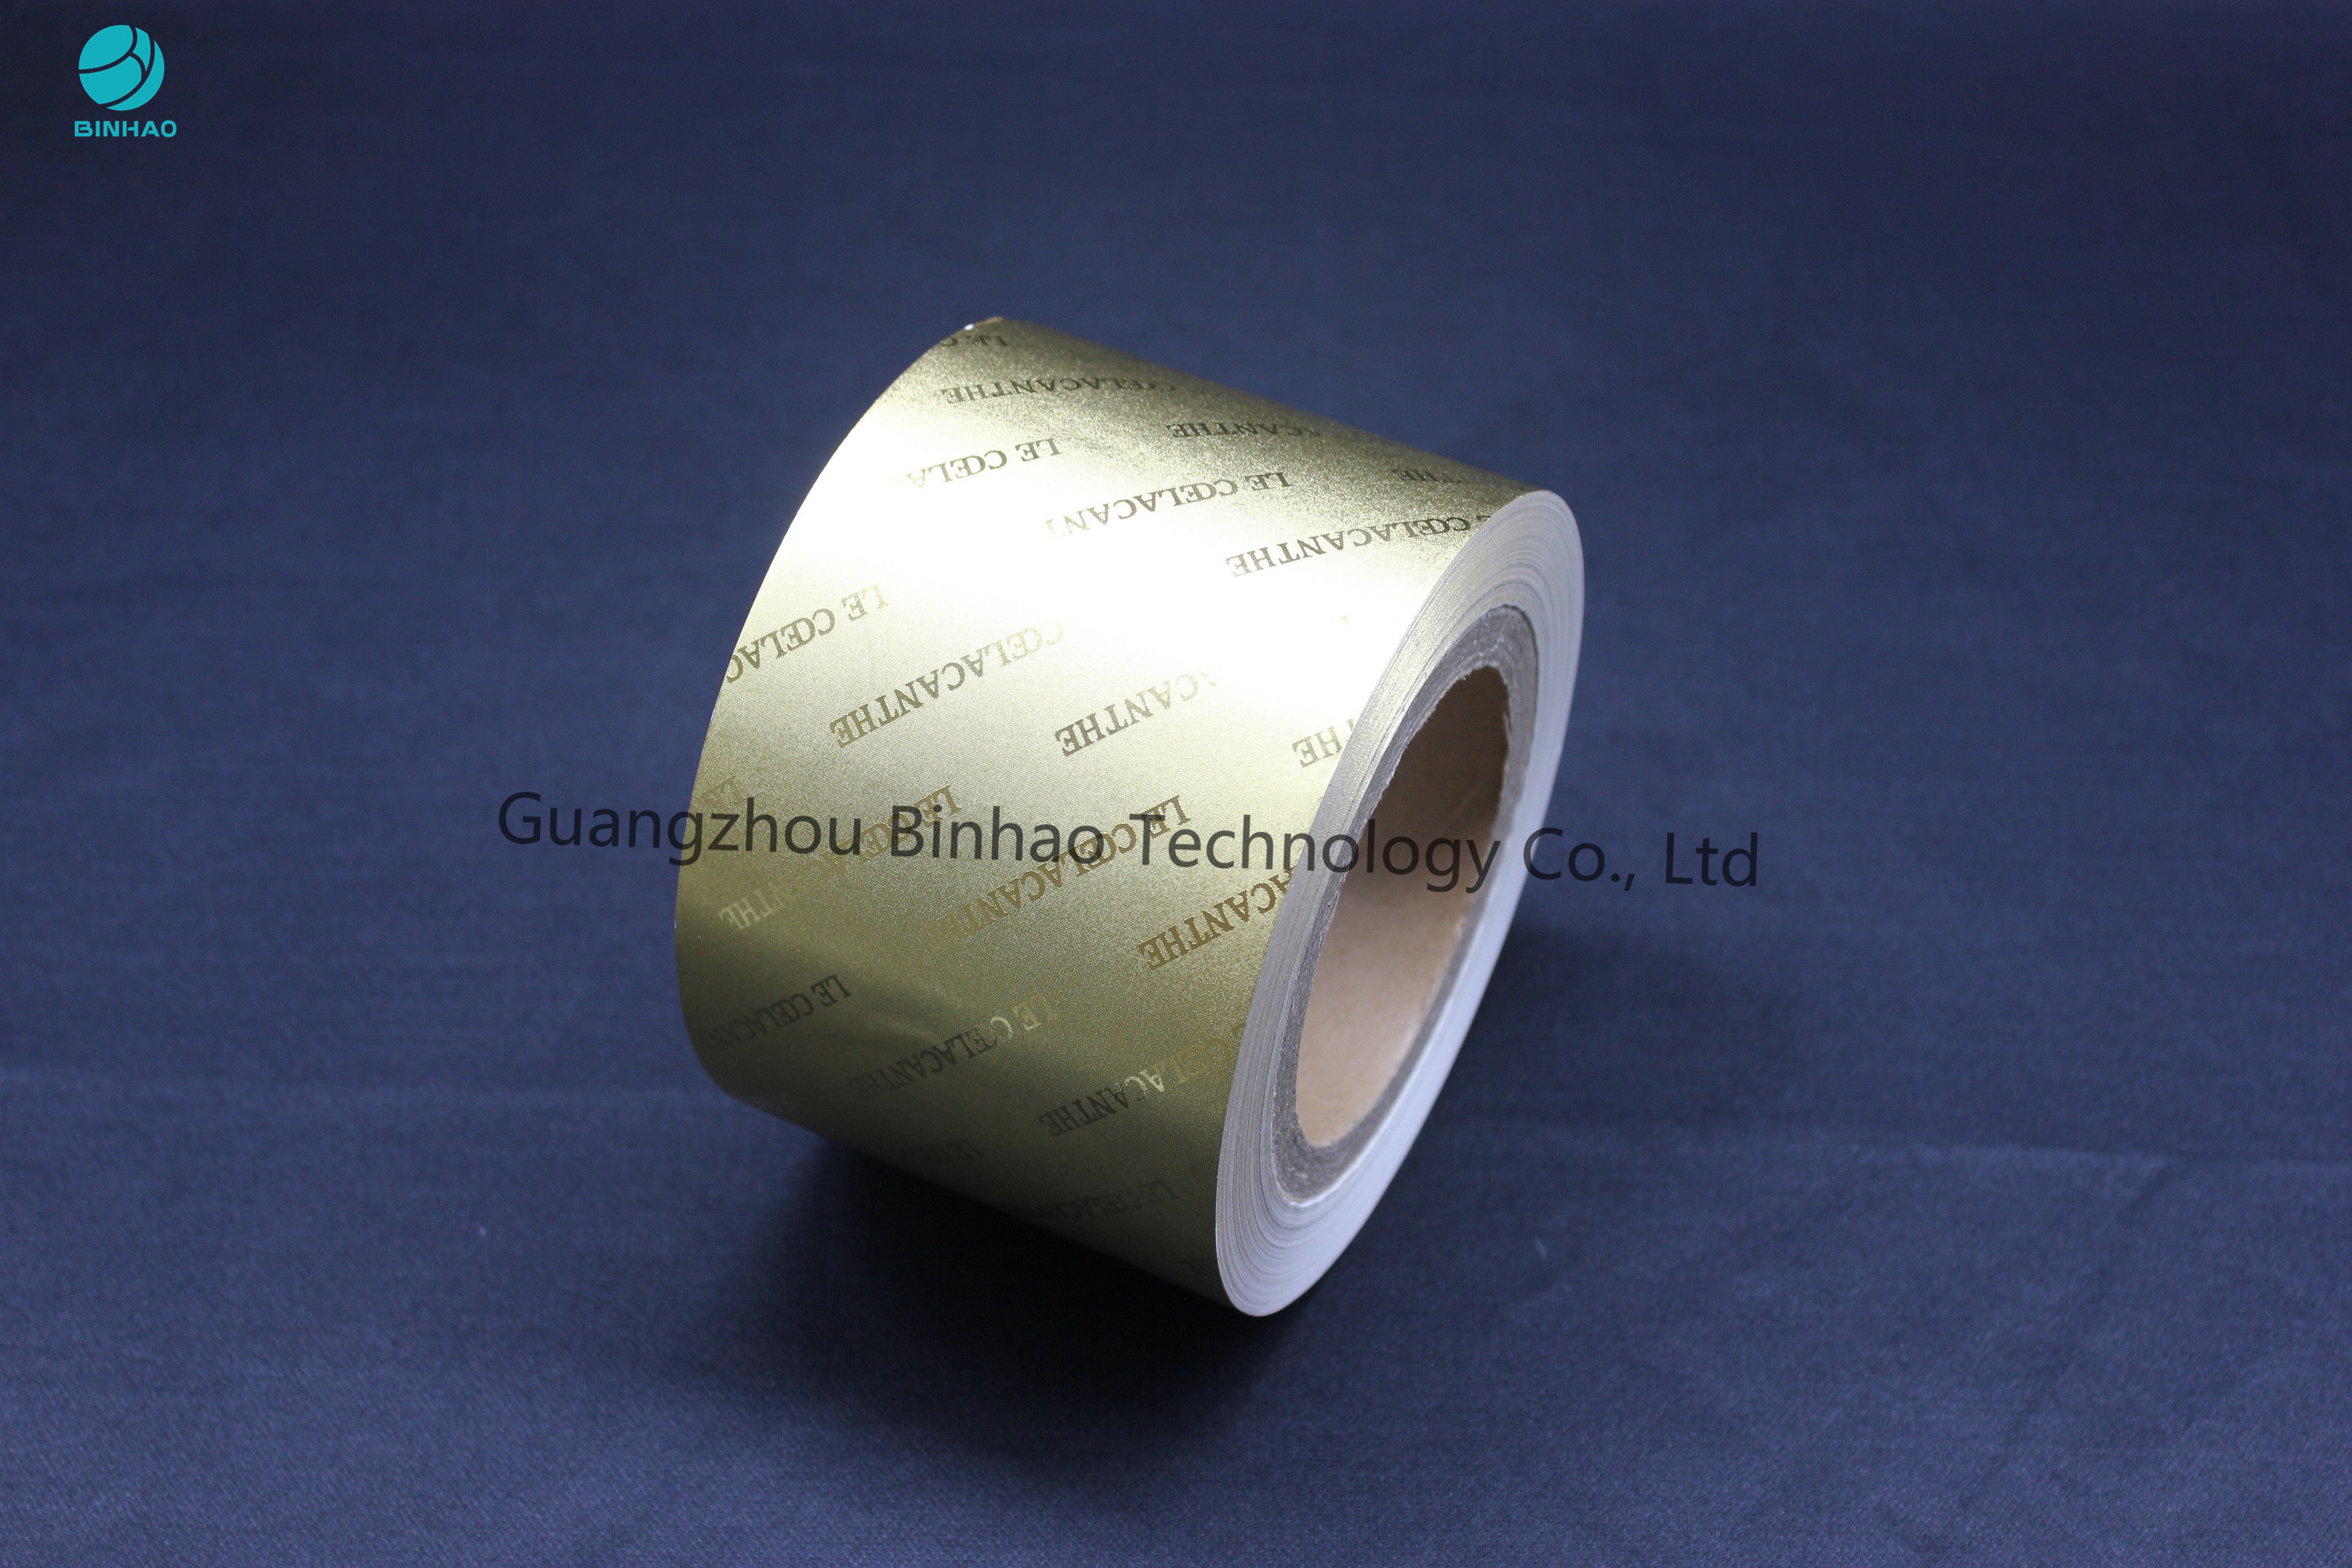 50g Gold Embossing Aluminum Foil Wrapping Paper Brand OEM Can Do With The Authorization